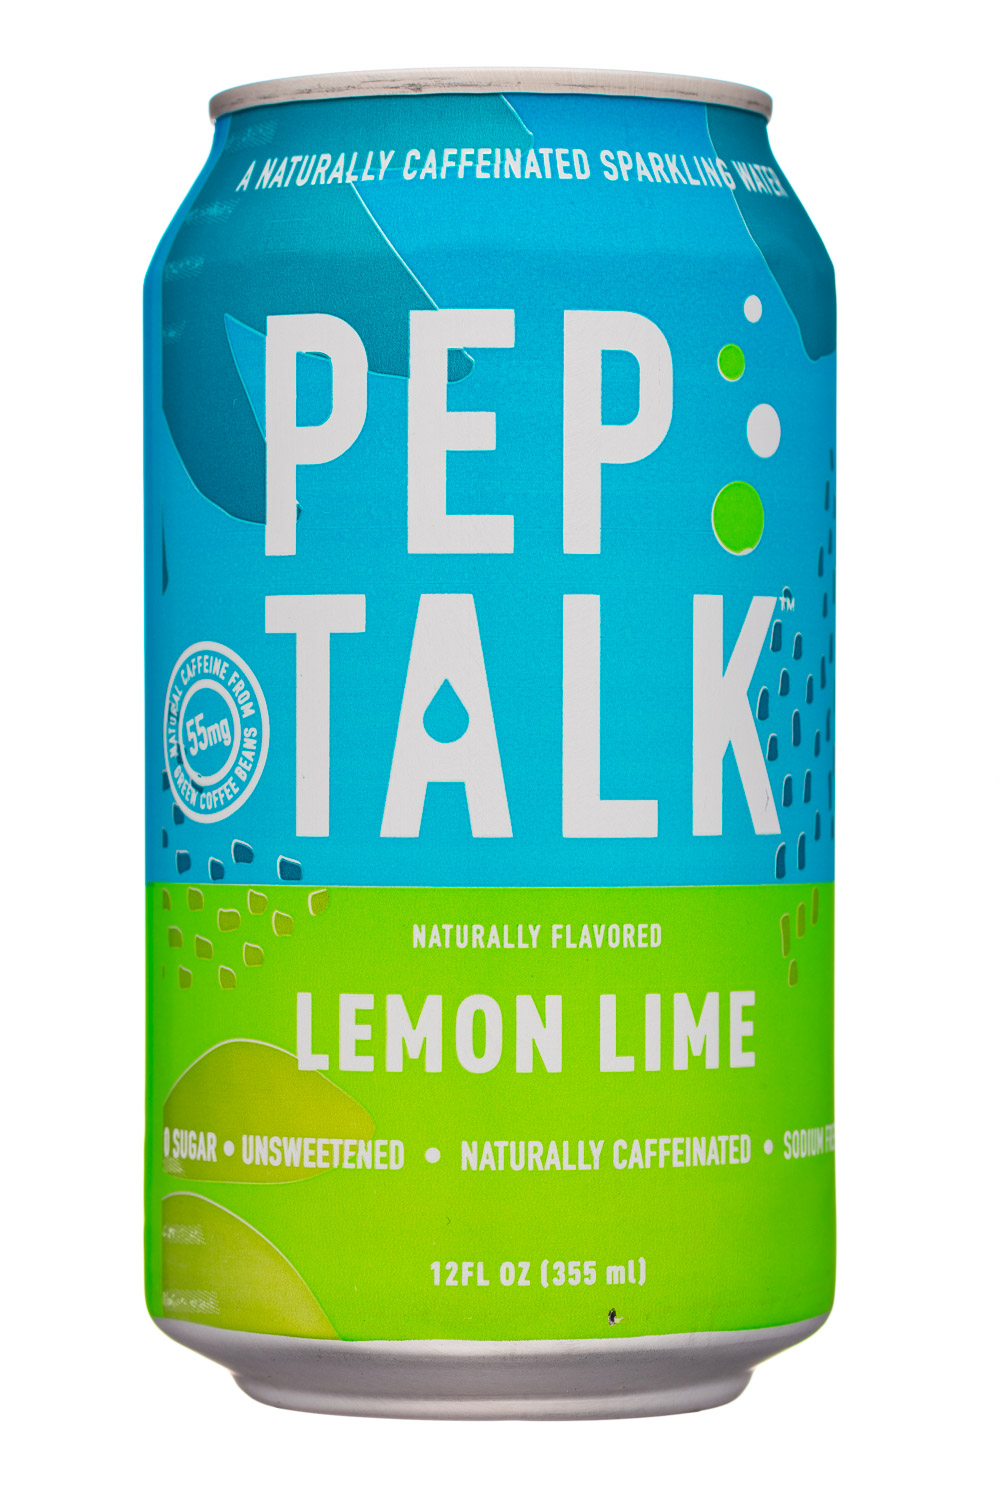 Lemon Lime - Naturally Caffeinated